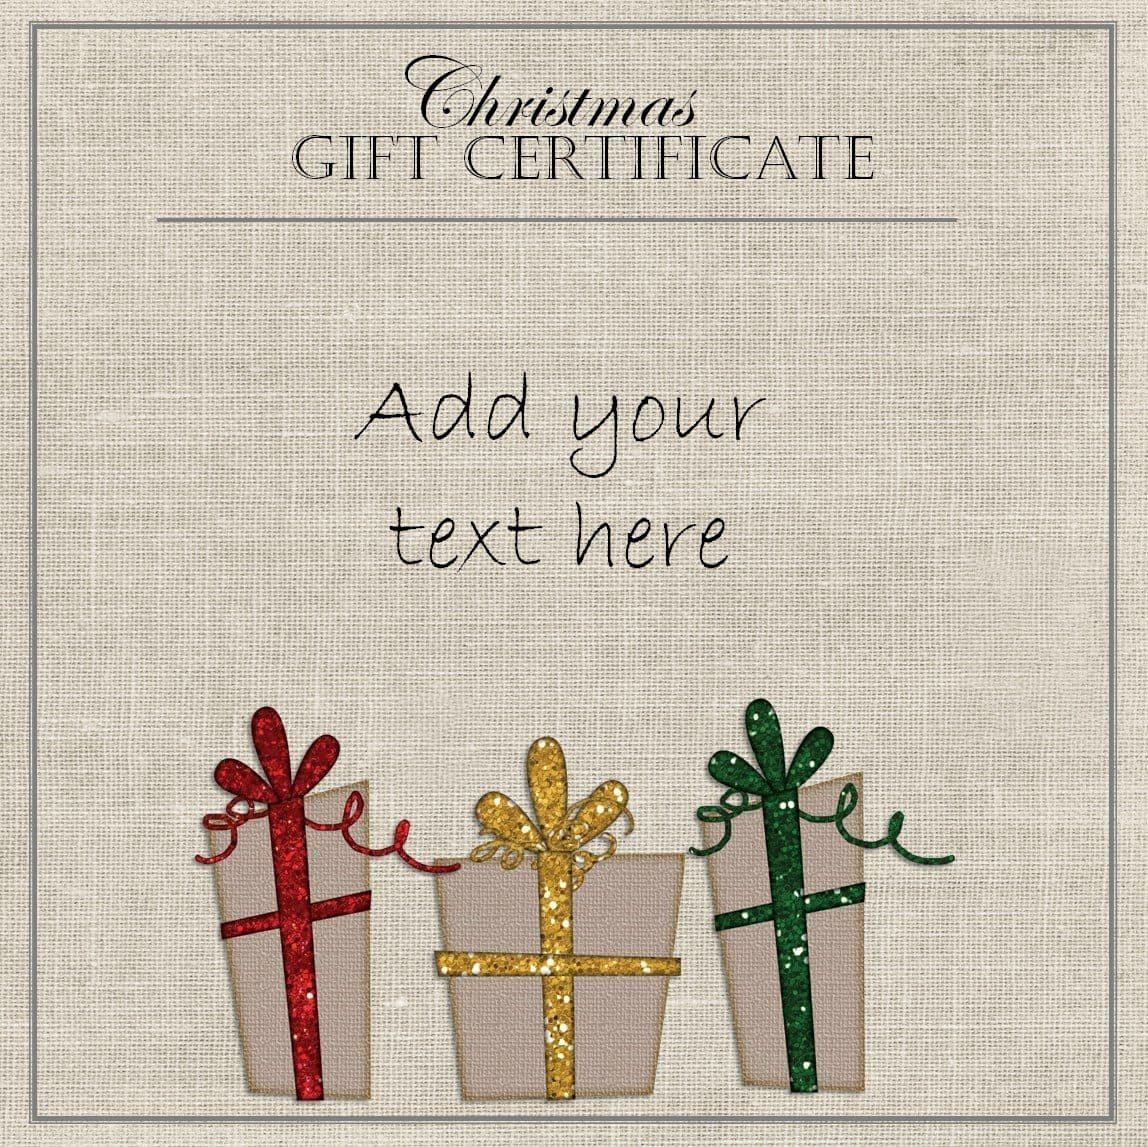 Free Christmas Gift Certificate Template  Customize Online  Download Regarding Christmas Gift Certificate Template Free Download